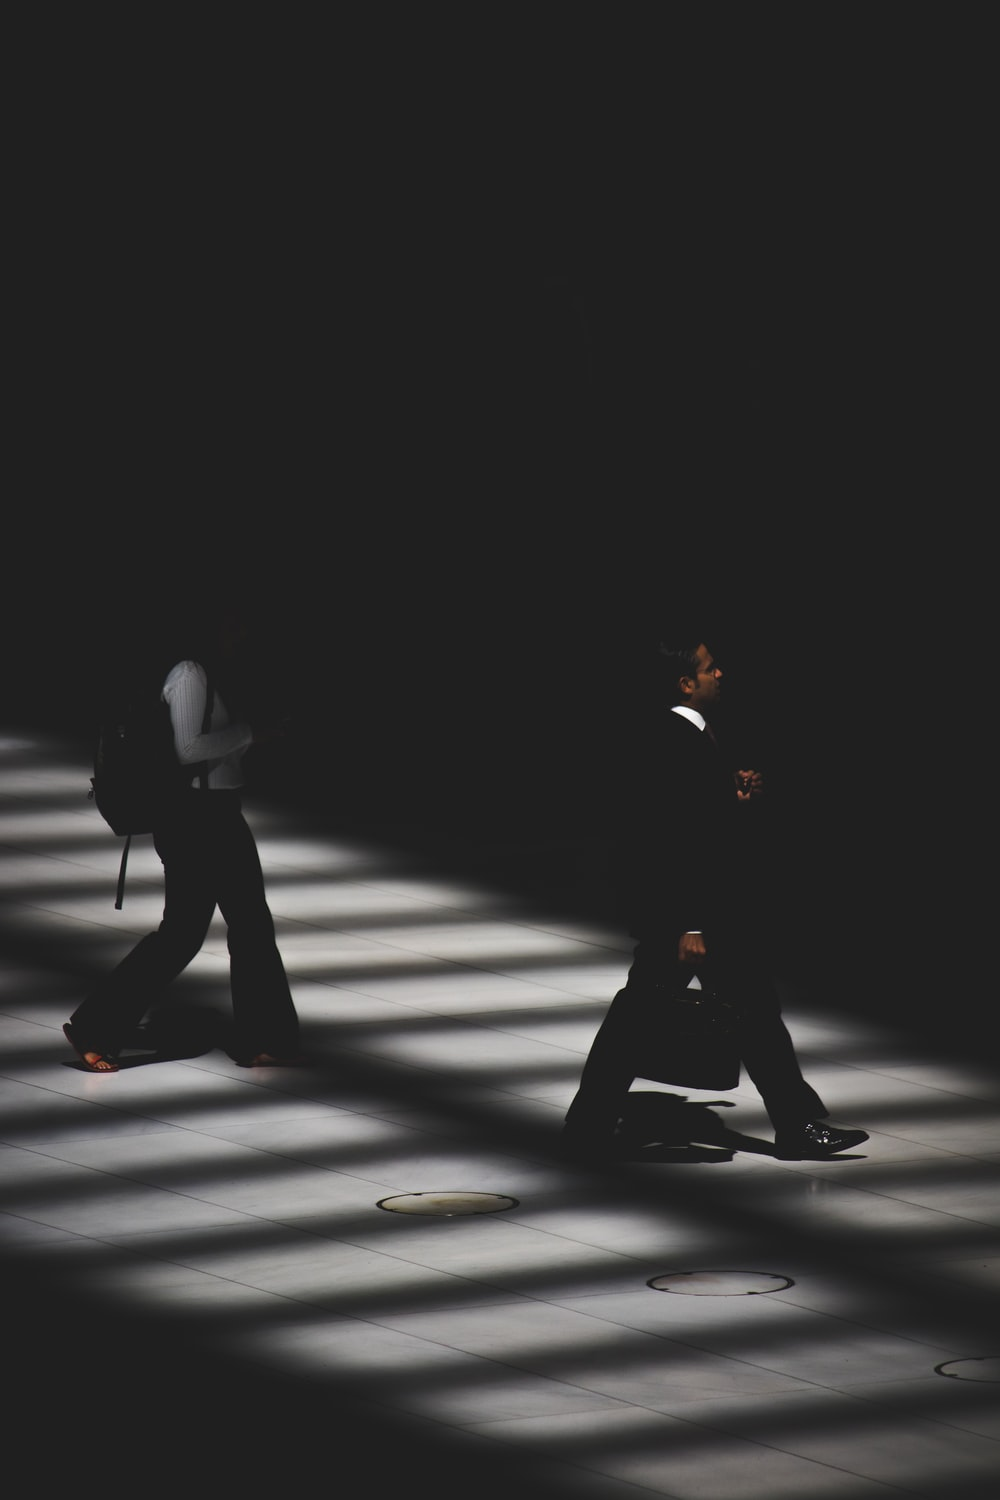 two person walking inside building with black lighting